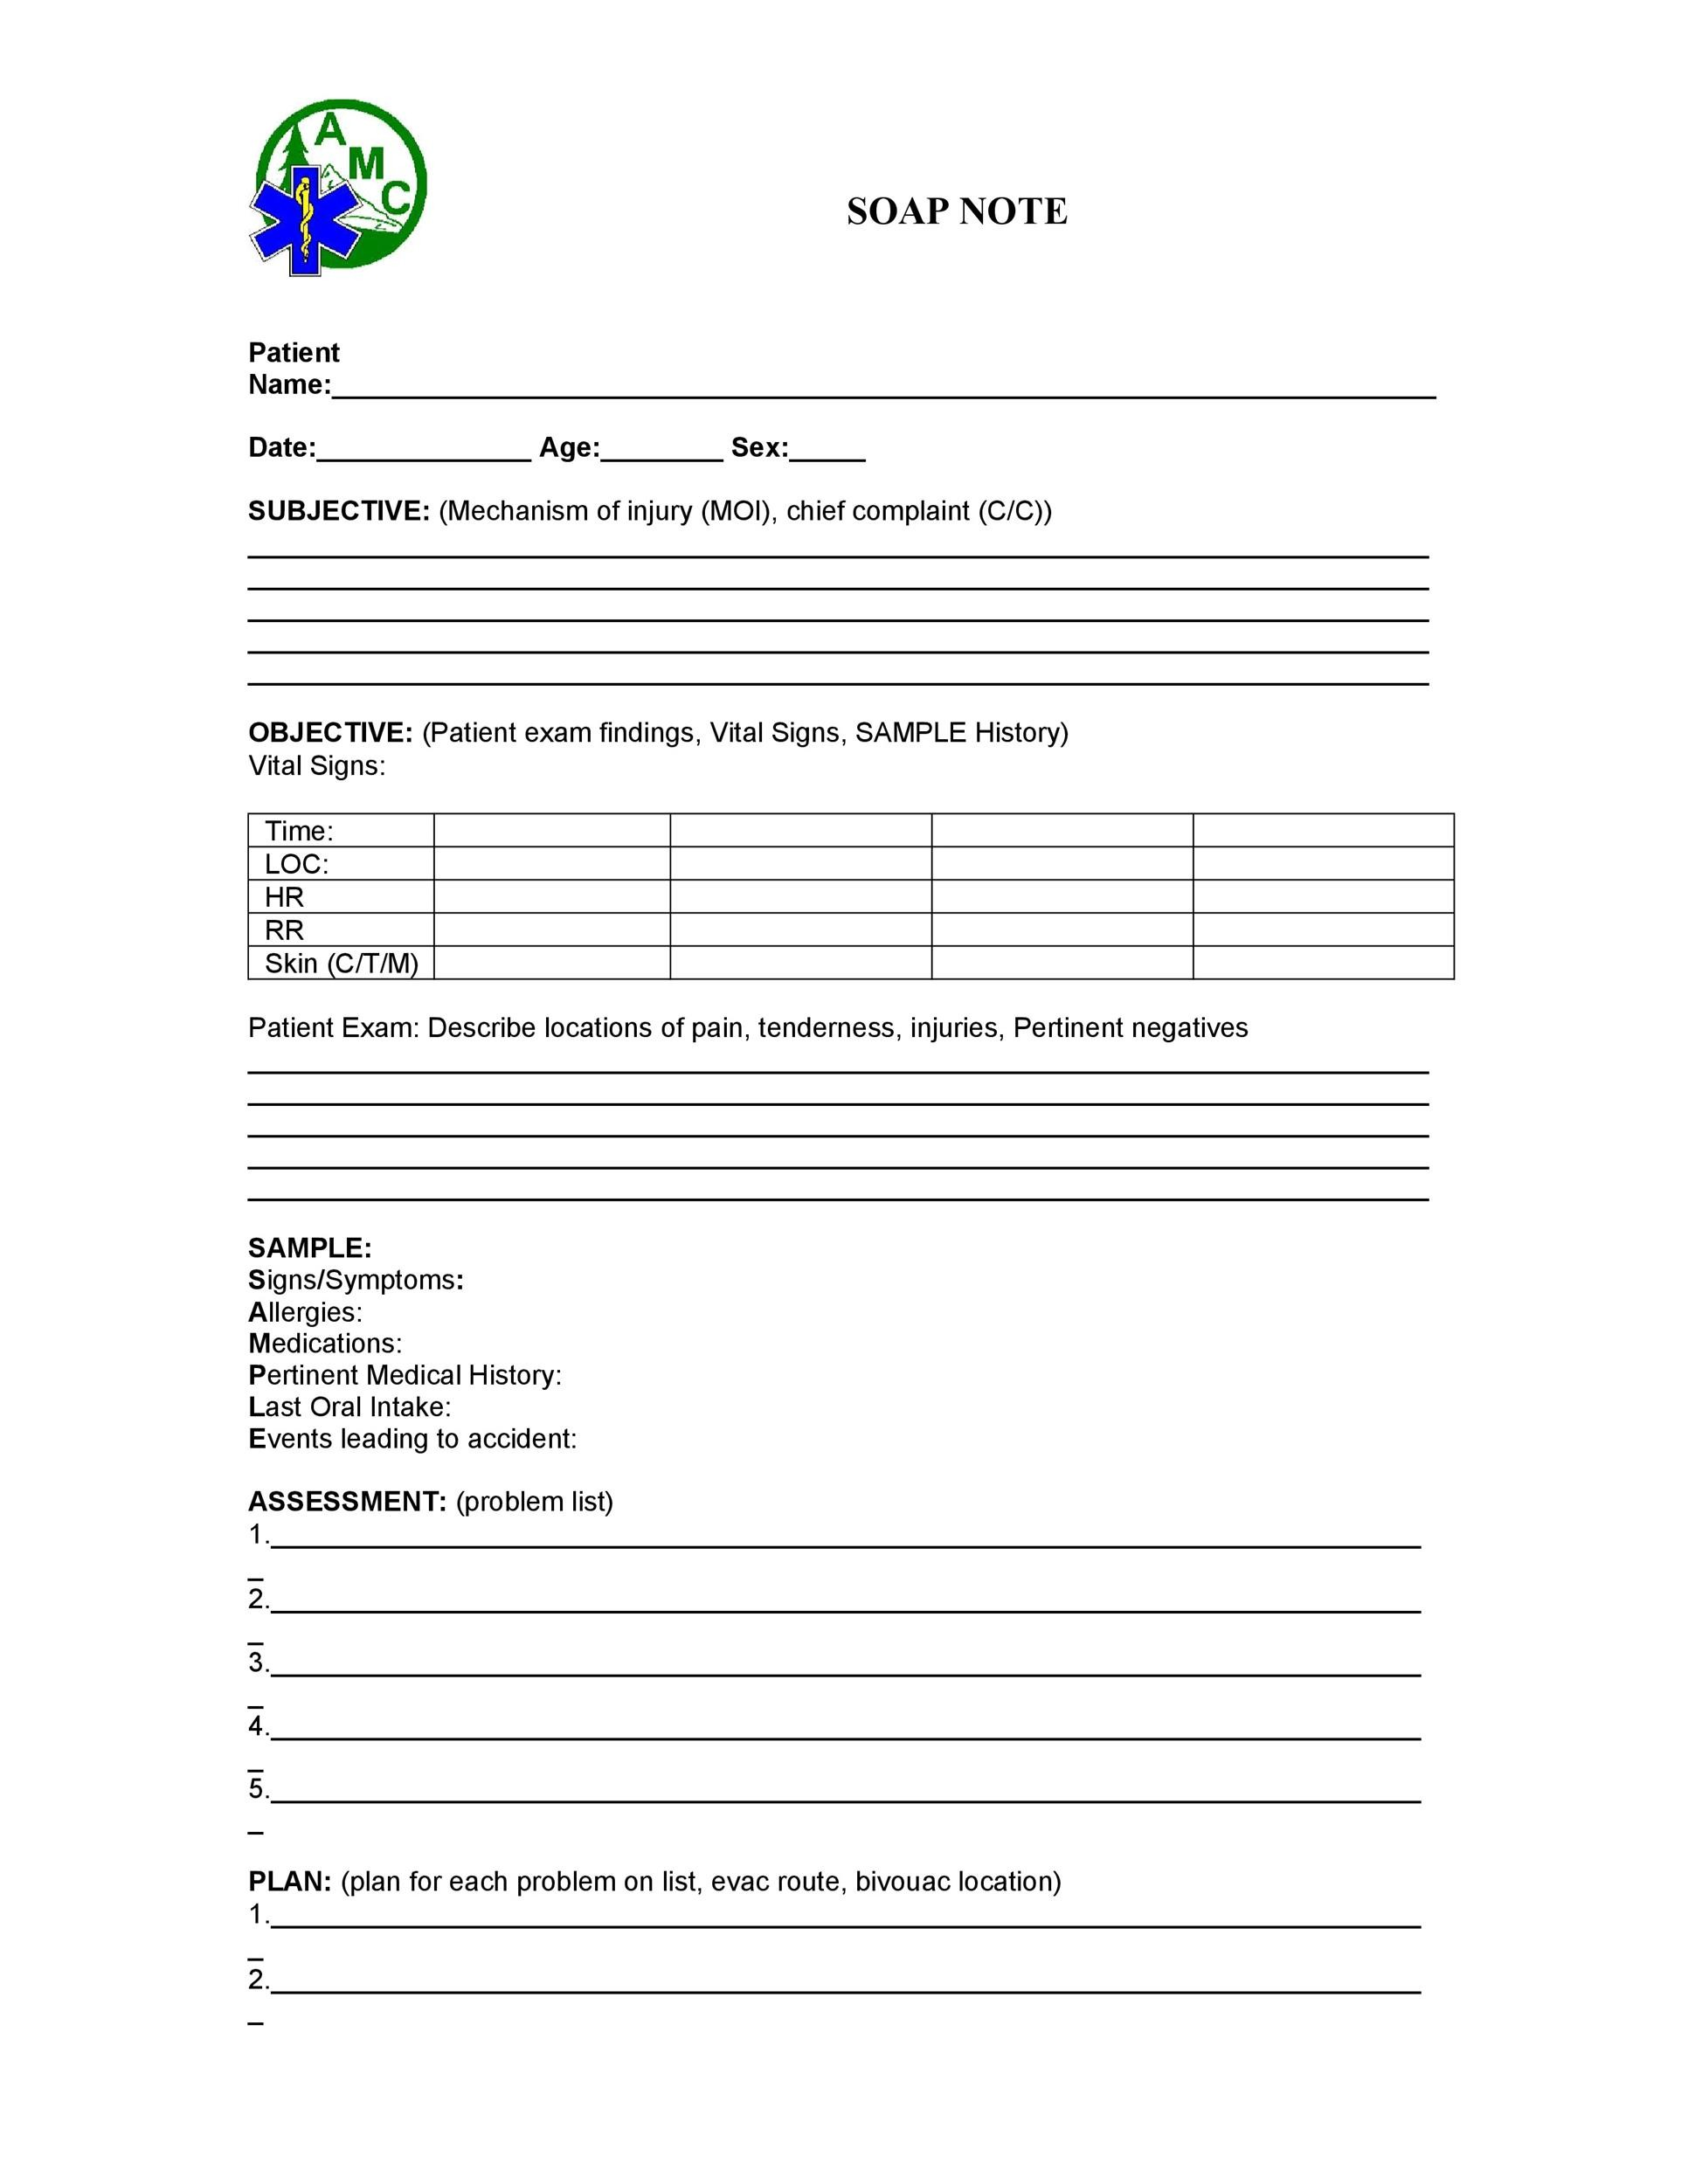 Soap Note Template 25